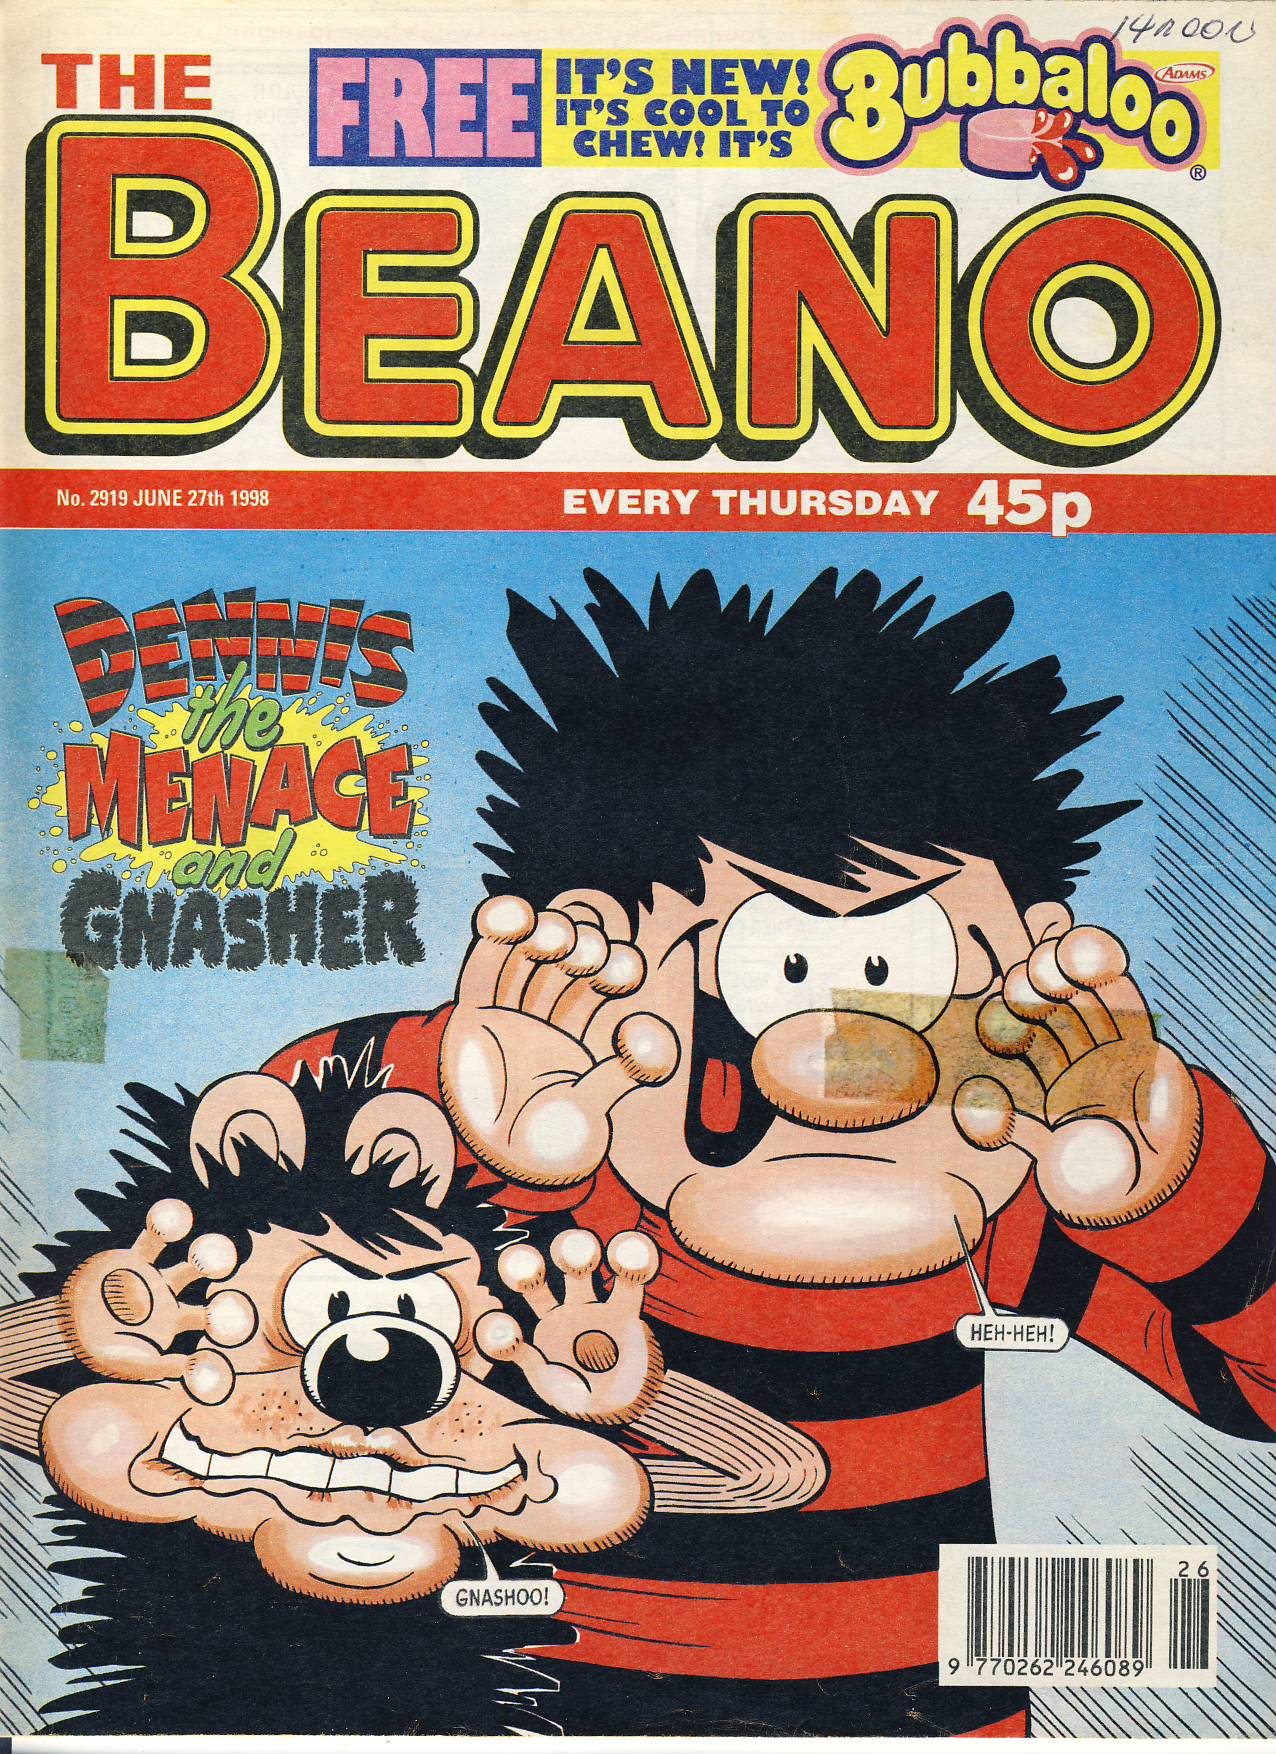 1998 June 27th BEANO vintage comic Good Gift Christmas Present Birthday Anniversary ref224 a pre-owned item in very good read condition.